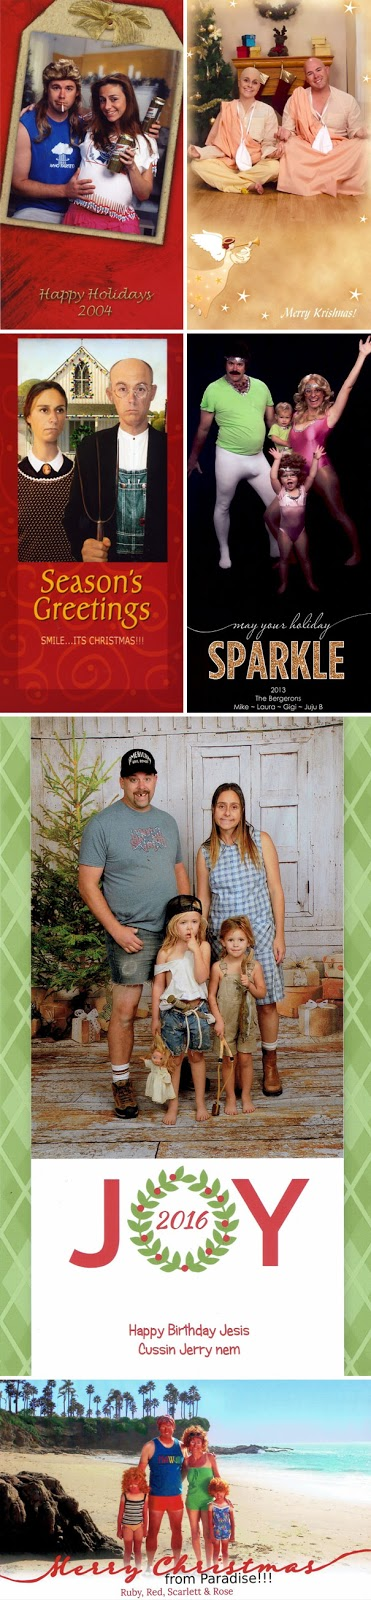 Bergeron Christmas Cards.These Are The Funniest Christmas Cards We Have Ever Seen